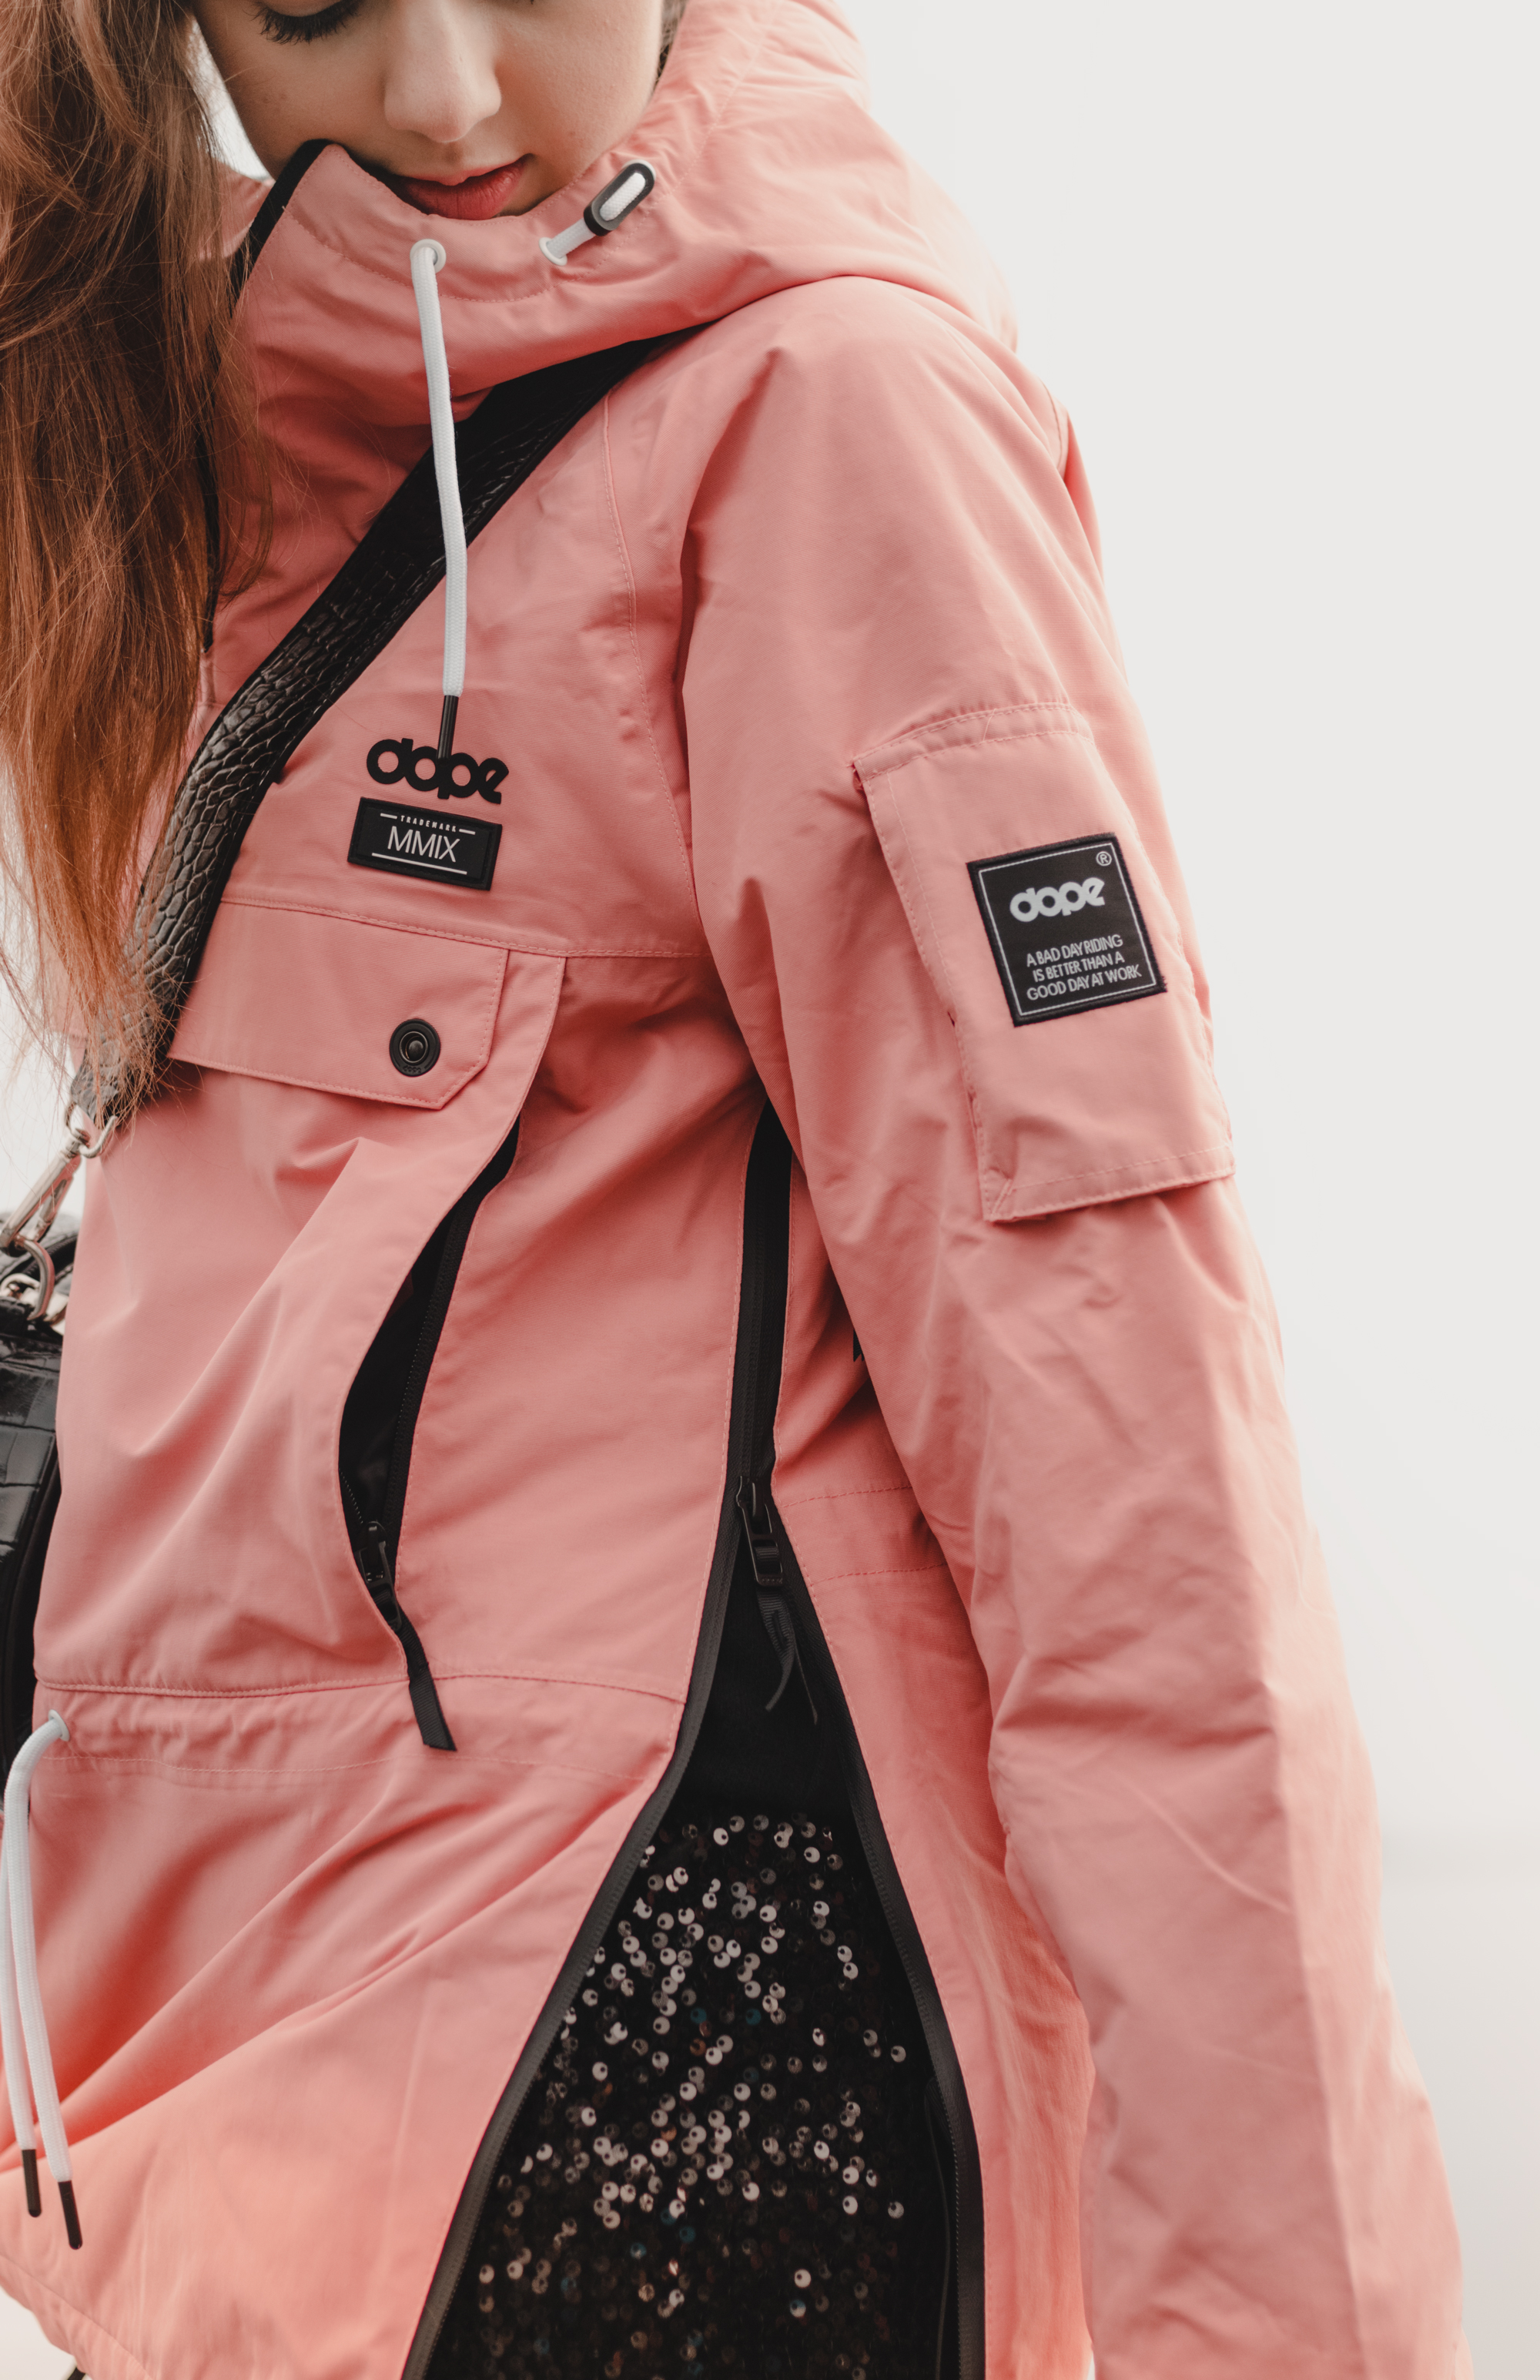 Fashion, Fashionblog, Fashion Magazine, Editorial, Style, Style Guide, Style Inspiration, Outift, OOTD, Outfit Inspiration, Inspo, Edgy, Stylish, Trends, Trend, Trendsetter, Fashion Update, News, Athleisure, Ski Jacket, Jacket